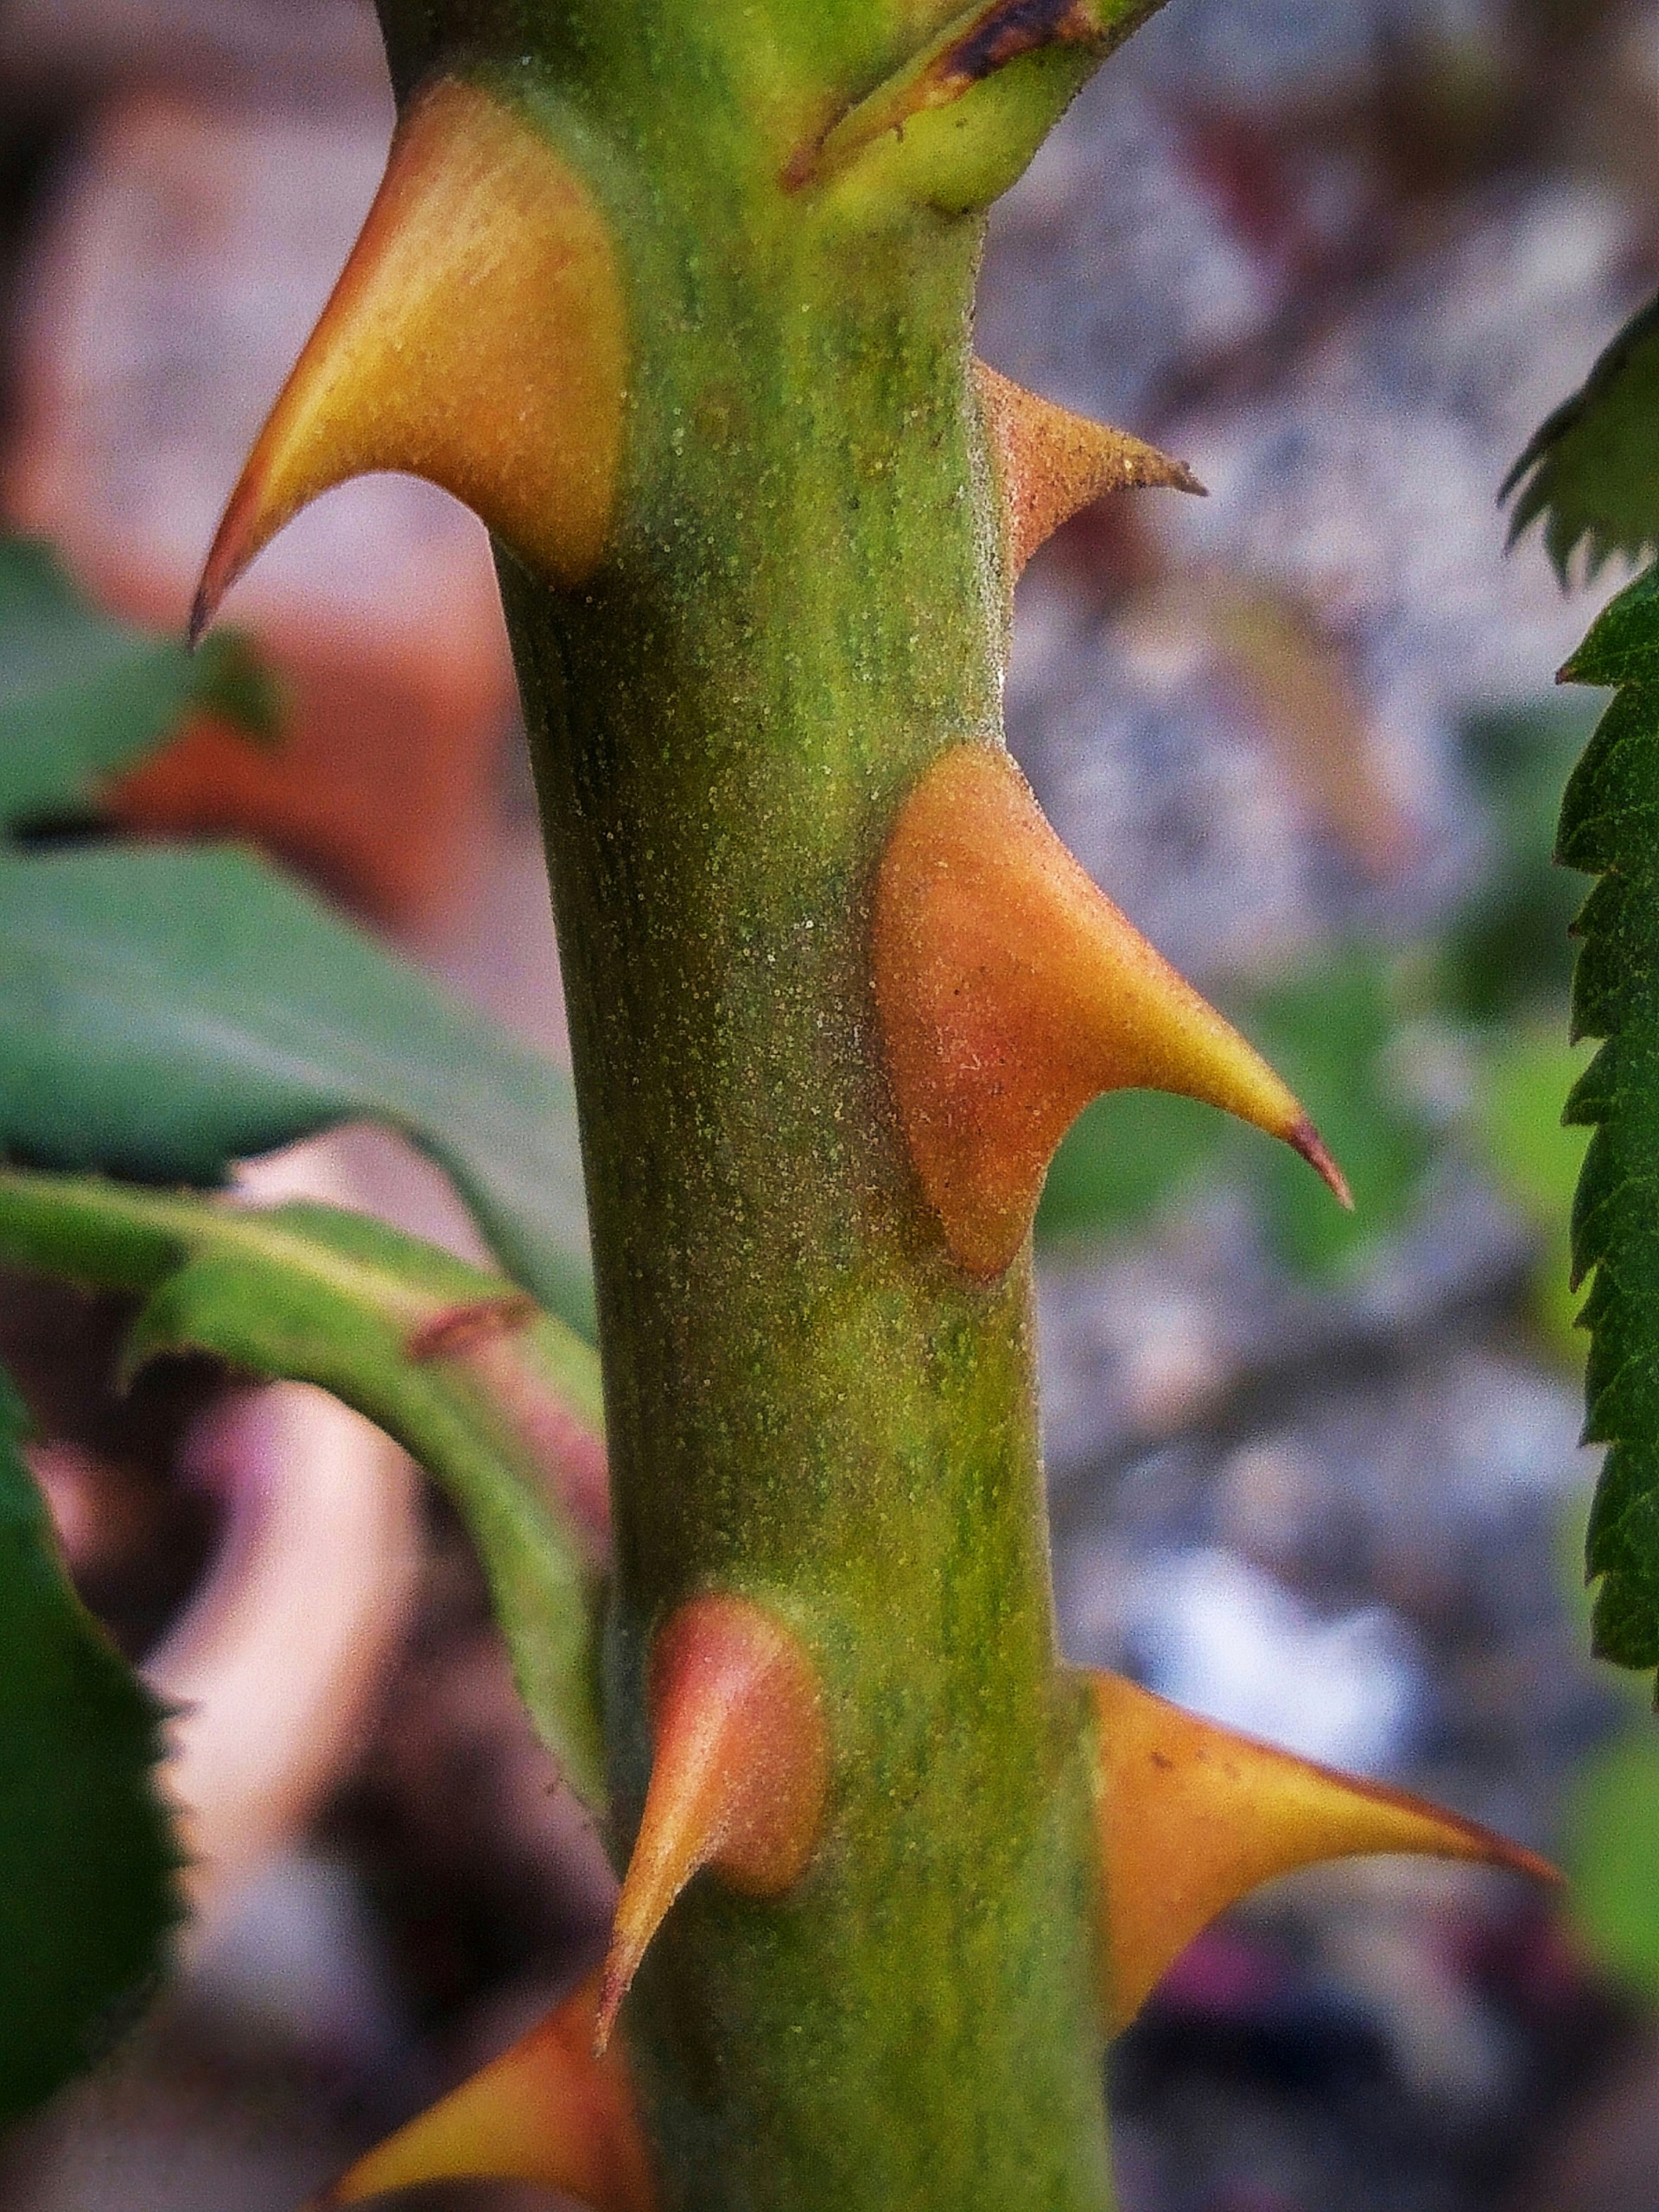 Thorns of Rose Plant